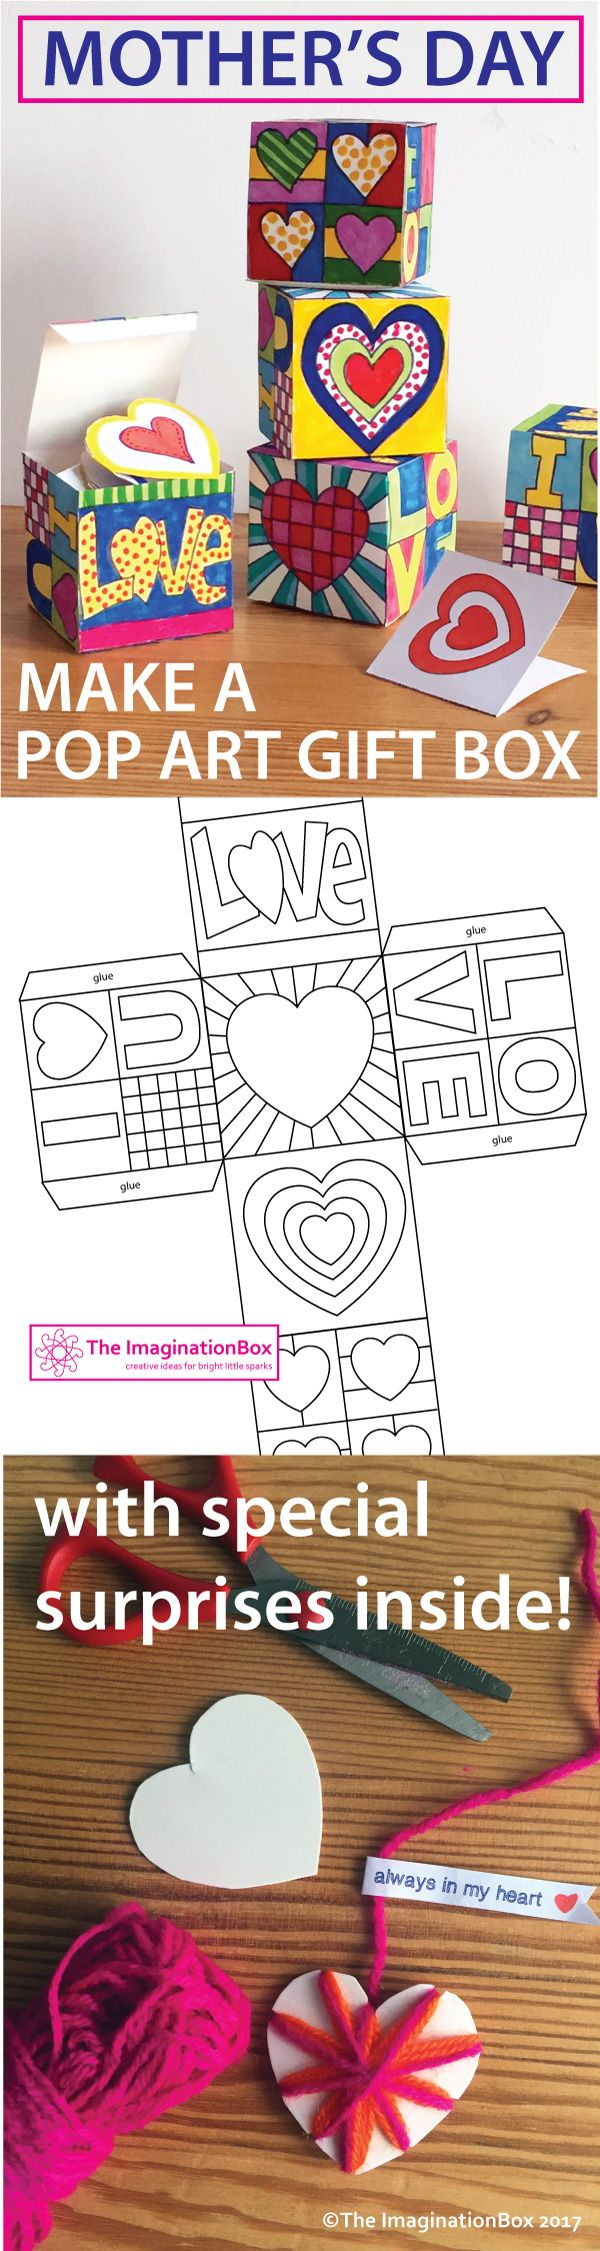 This Pop Art Hearts Doodle Gift Box is an ideal creative art project for Mother's Day or Valentine's Day. Equally it can be used at any time of the year as a general art activity exploring Pop Art, color and shape.  Students get to take home a beautiful finished keepsake gift box with some special surprise messages inside!